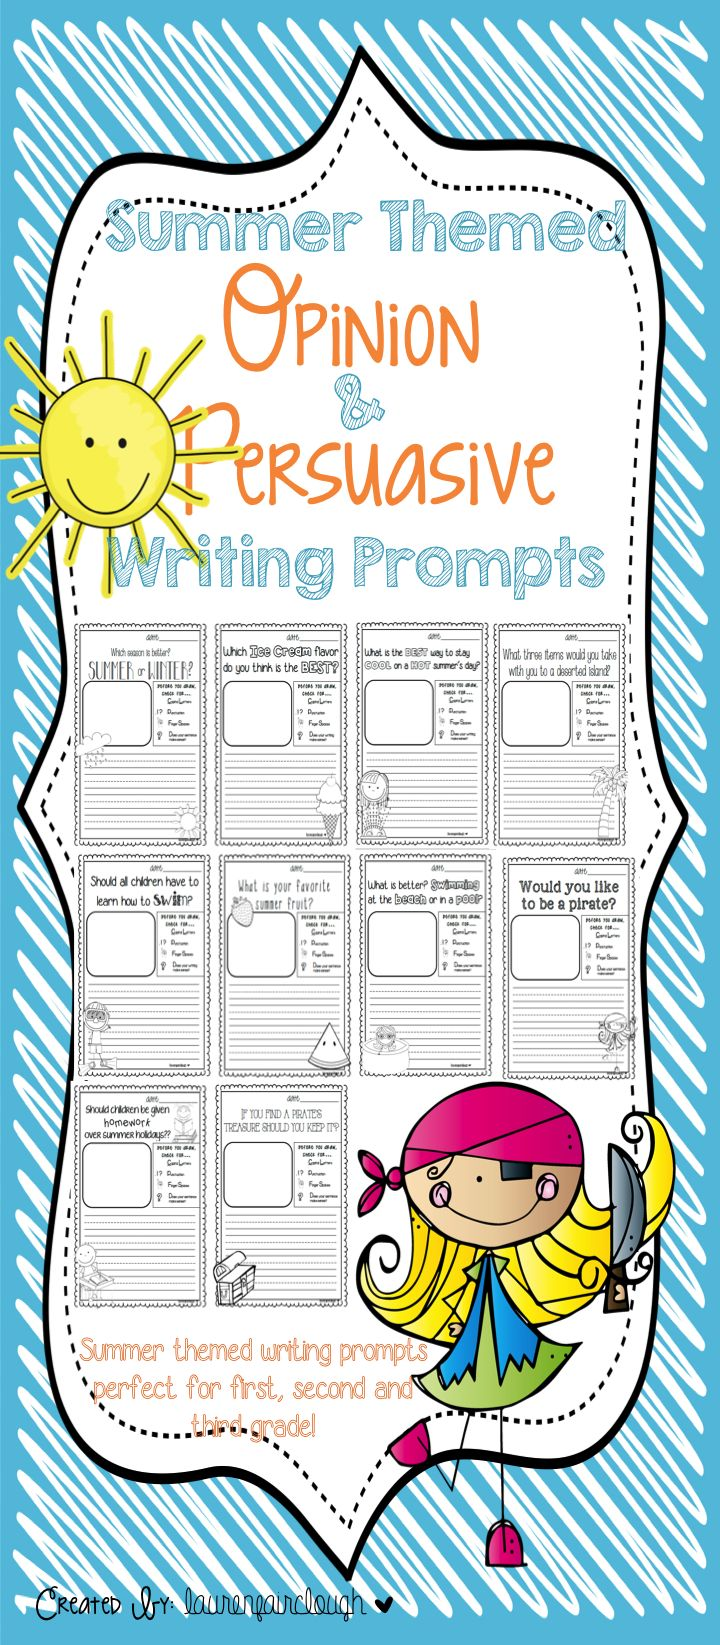 persuasive essay prompts for 4th graders Here are 24 thought-provoking prompts to jump-start persuasive writing the  common  these open-ended prompts are appropriate for a wide range of  grade levels and abilities © blair turner  on june 4, 2014, kimberly b said: i  always.